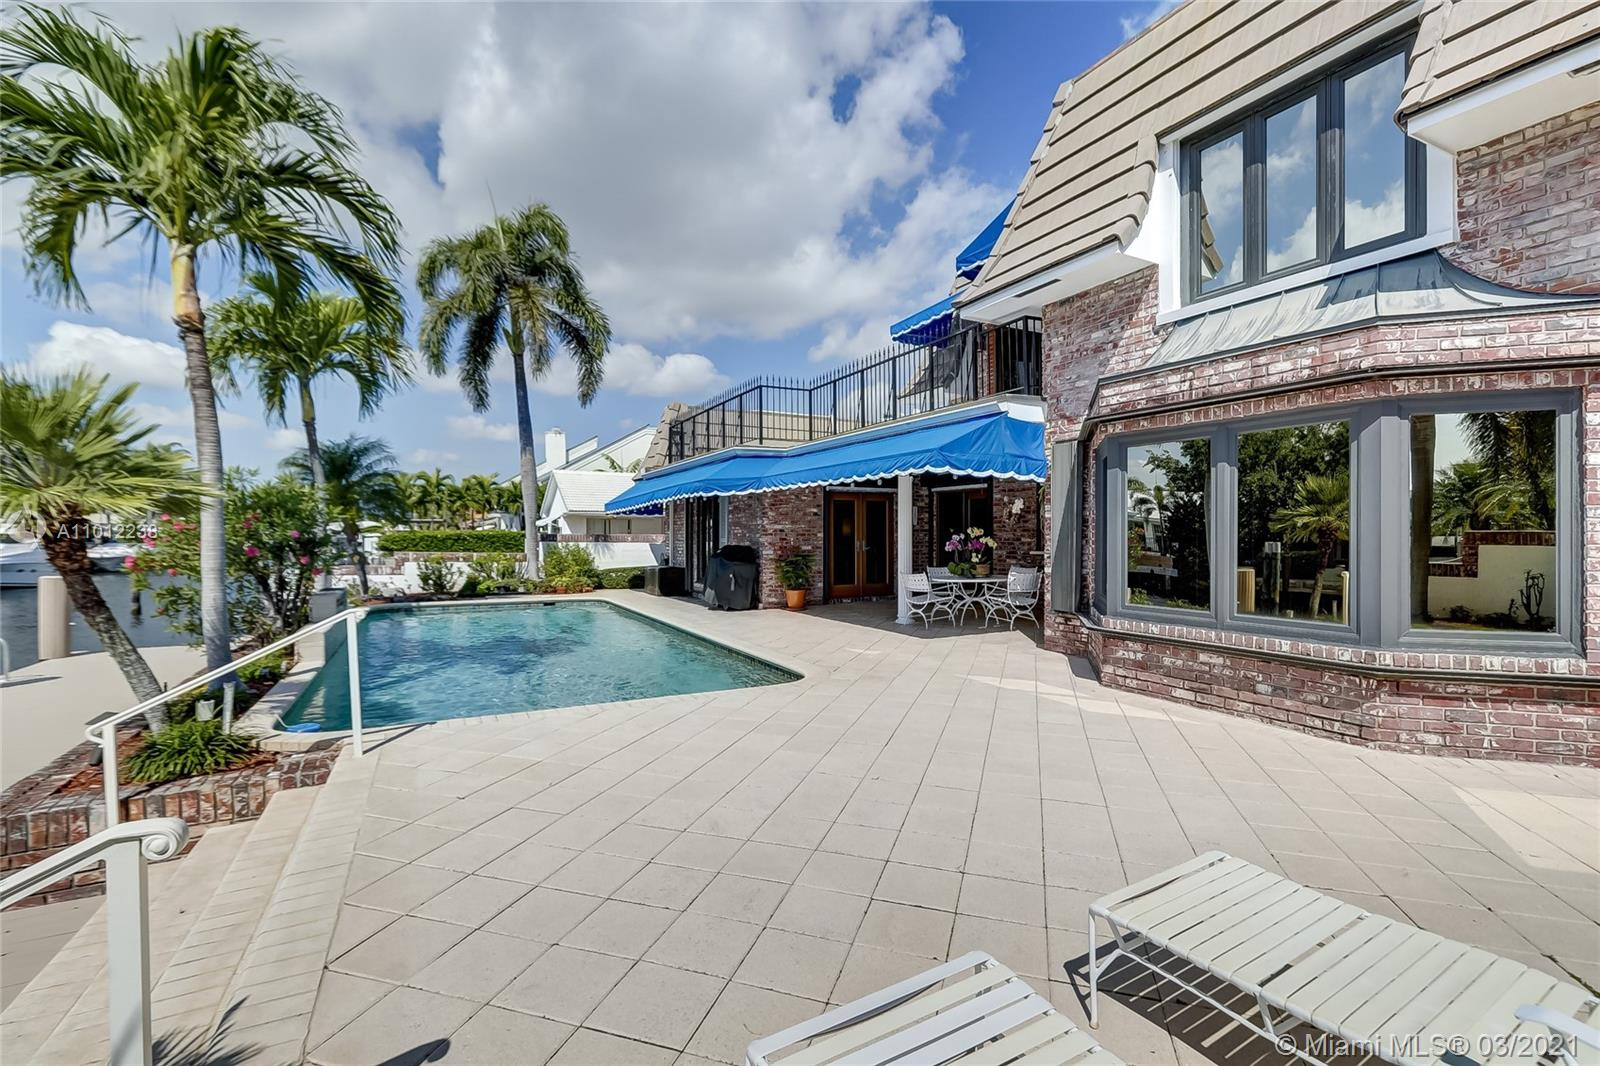 A boater's dream come true, this elegant oasis in coveted Coral Ridge enjoys the luxury of its very own private dock along with an array of tantalizing bay, canal, and Intracoastal views. Spanning two gracious levels with a versatile layout, the home is idyllically situated on a quiet cul-de-sac just a stone's throw from the tranquil Intracoastal and mere minutes from the ocean. The perfect vacation home, primary residence, or income property, this supremely serene refuge spares no details and showcases dramatic light-filled living spaces, sumptuous hardwood floors, a chef-inspired kitchen, spa-like baths, an invigorating pool, manicured gardens, and a suite of tasteful finishes throughout.